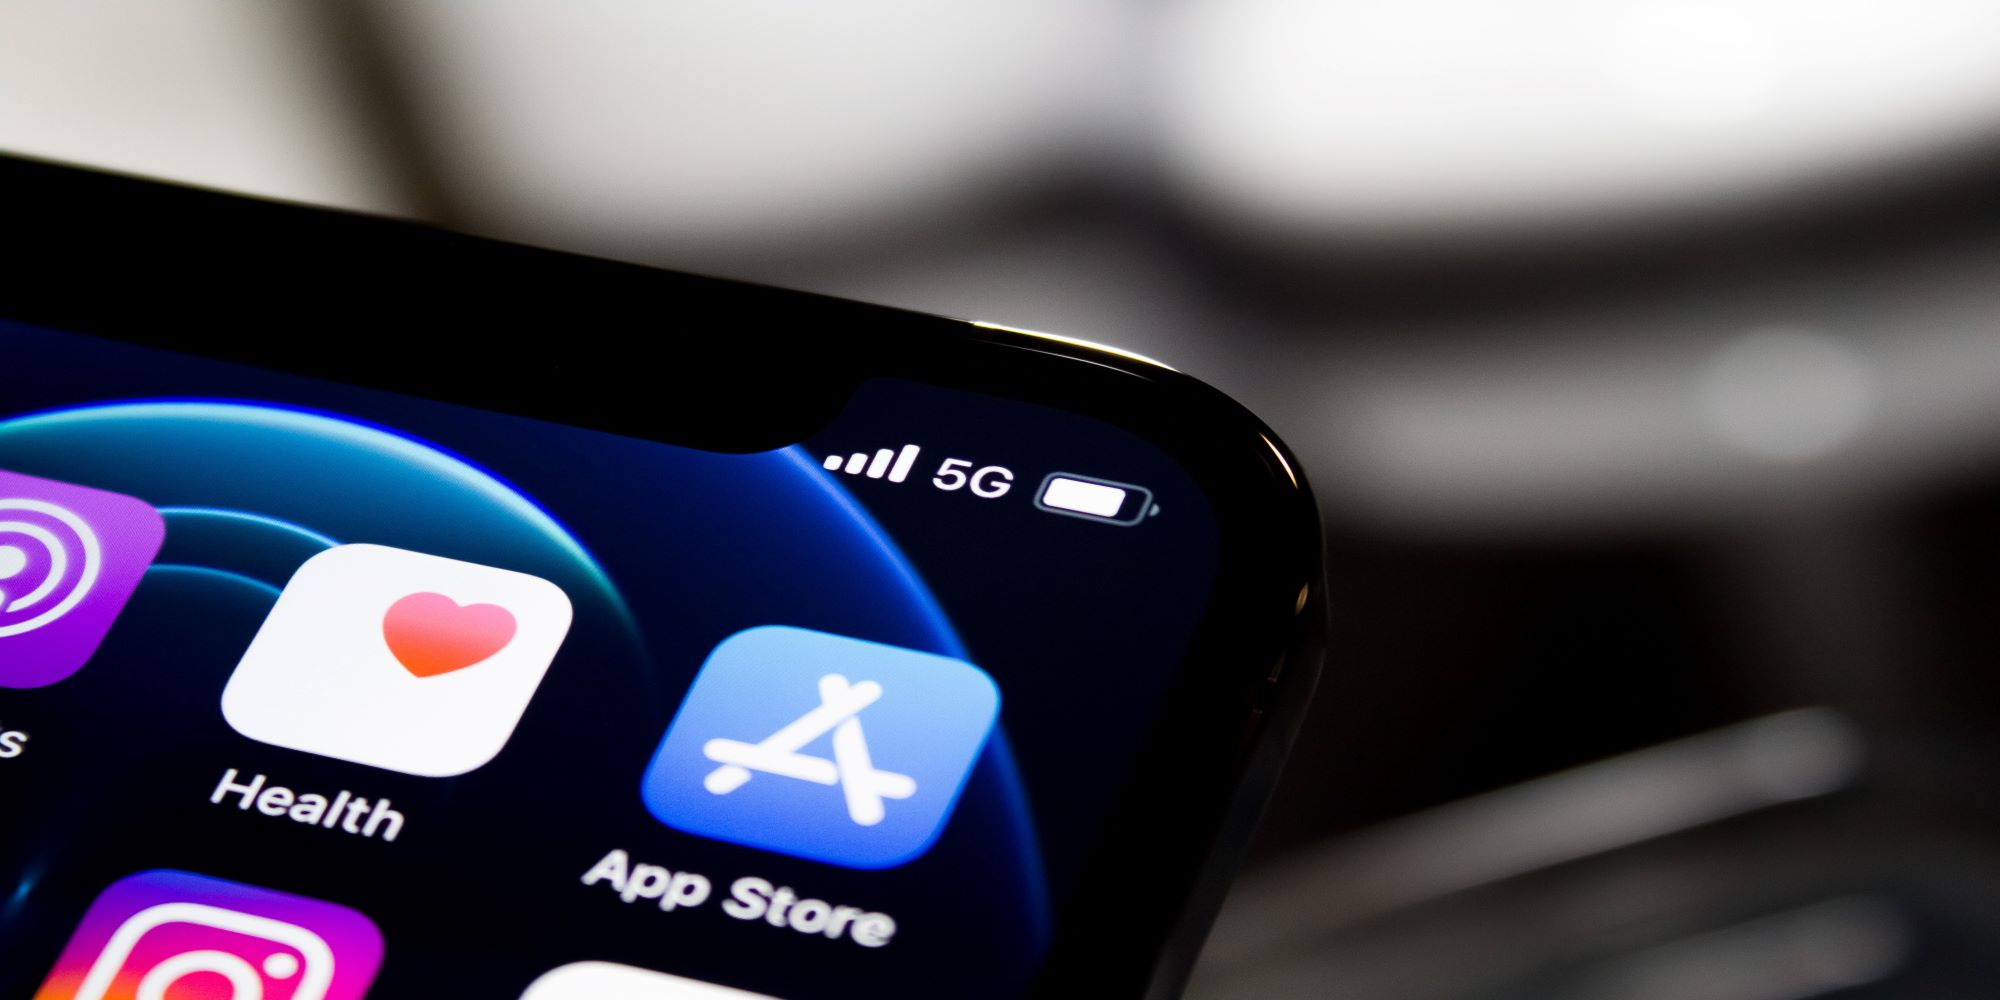 International Marketing News: Could 5G Improve Payment and Mobile Commerce Experience?